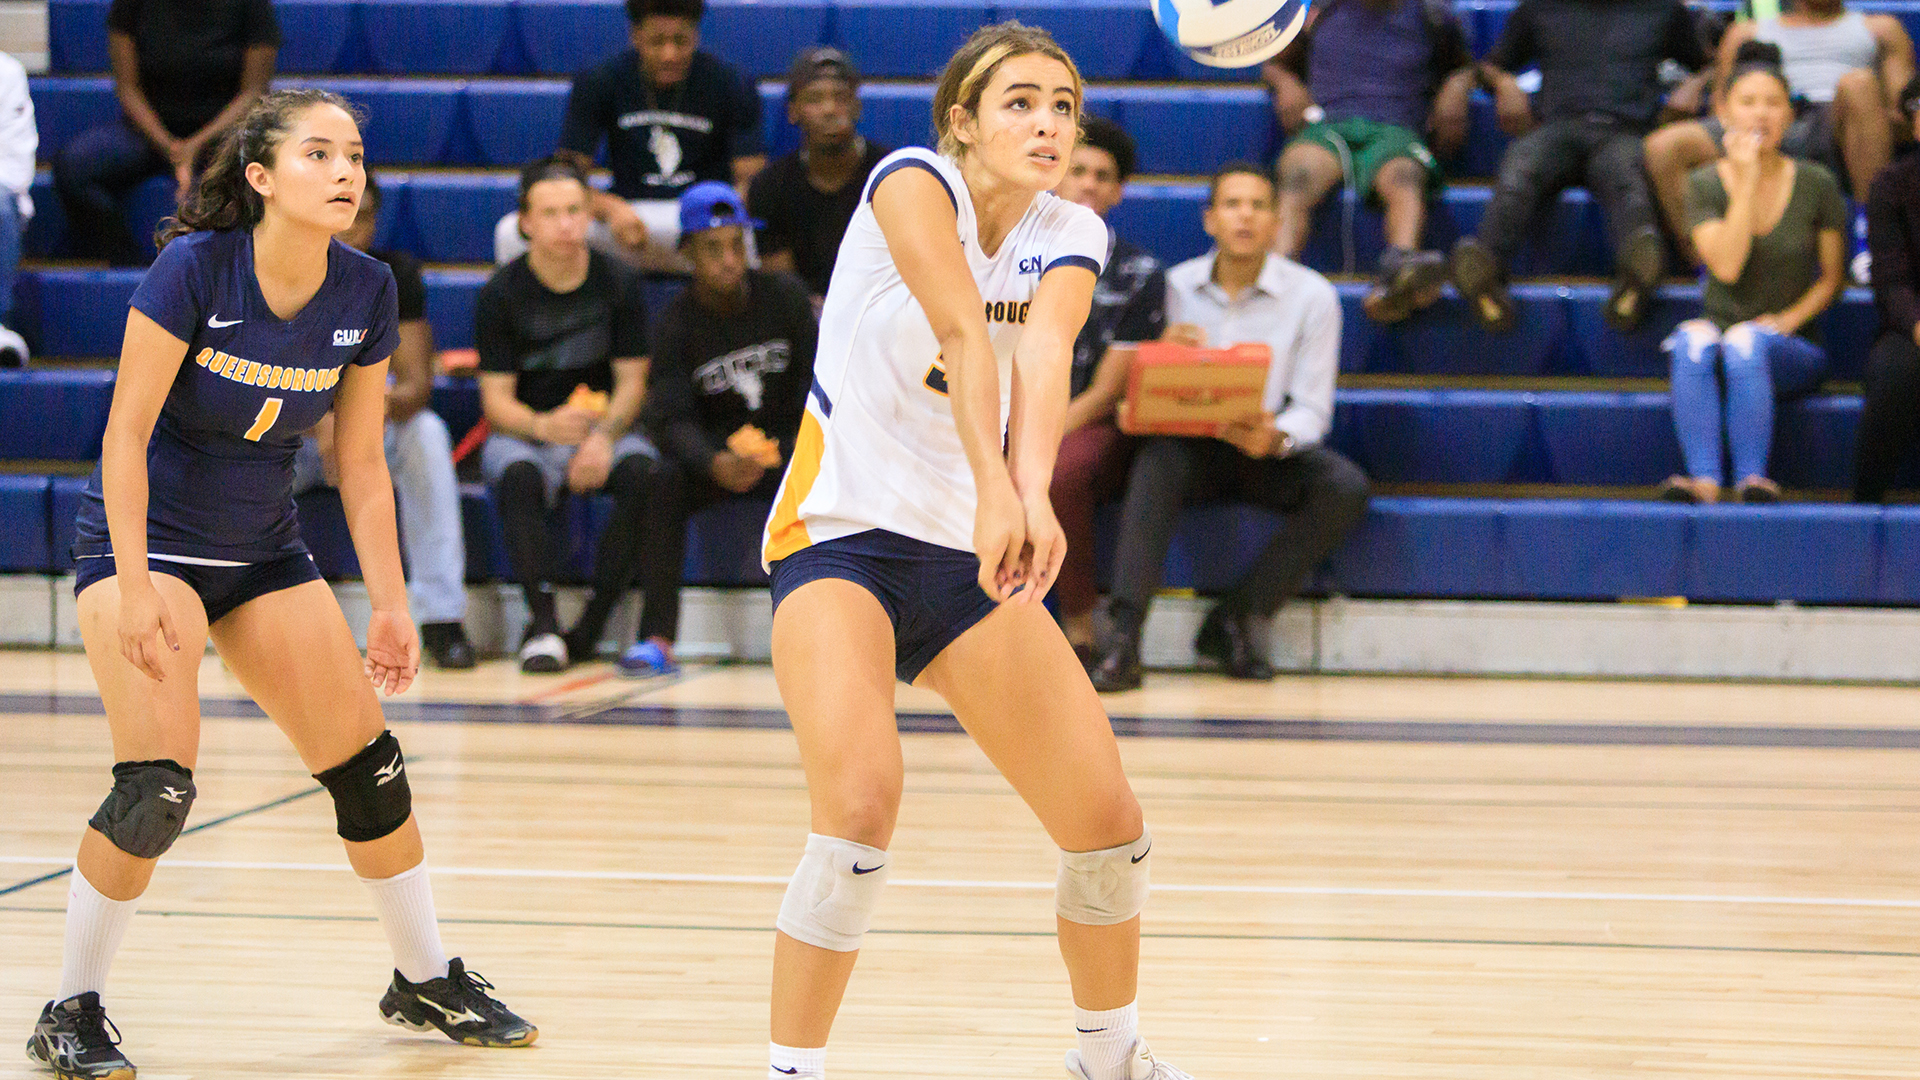 CUNYAC Women's Volleyball Athlete of the Week, Paola Beniquez